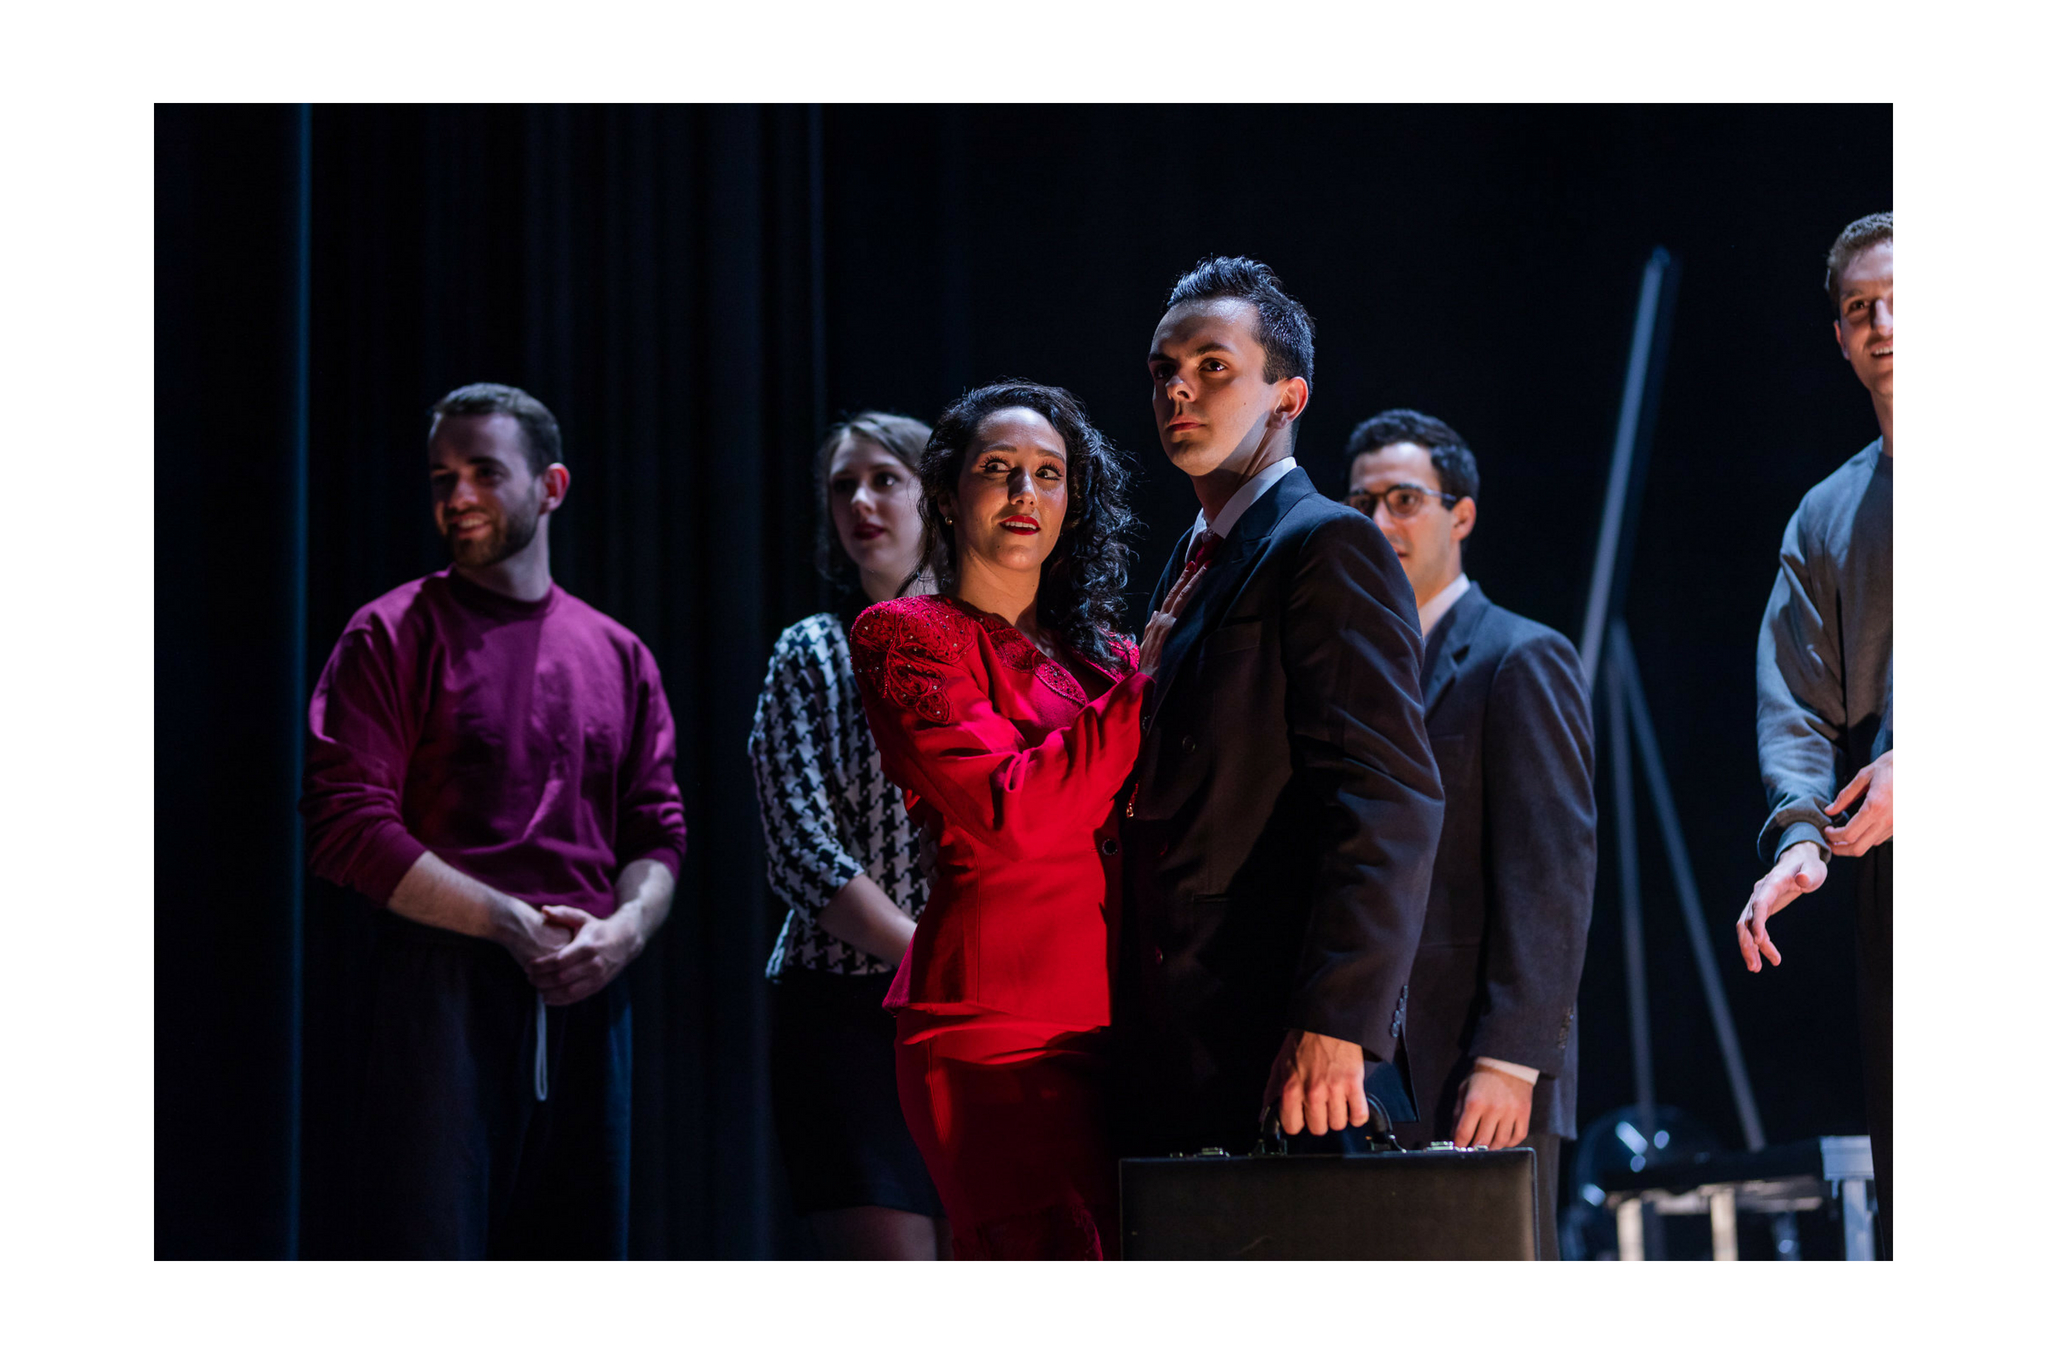 Kody Grasset (Lenox), Bailie de Lacy (Lady Macduff), Stefanie Resnick (Lady Macbeth), Billy Saunders, Jr. (Macbeth), Felix Teich (Donalbain), and Ross Barron (Ross) in Macbeth, CSC2, 2018-Photo by Nile Hawver